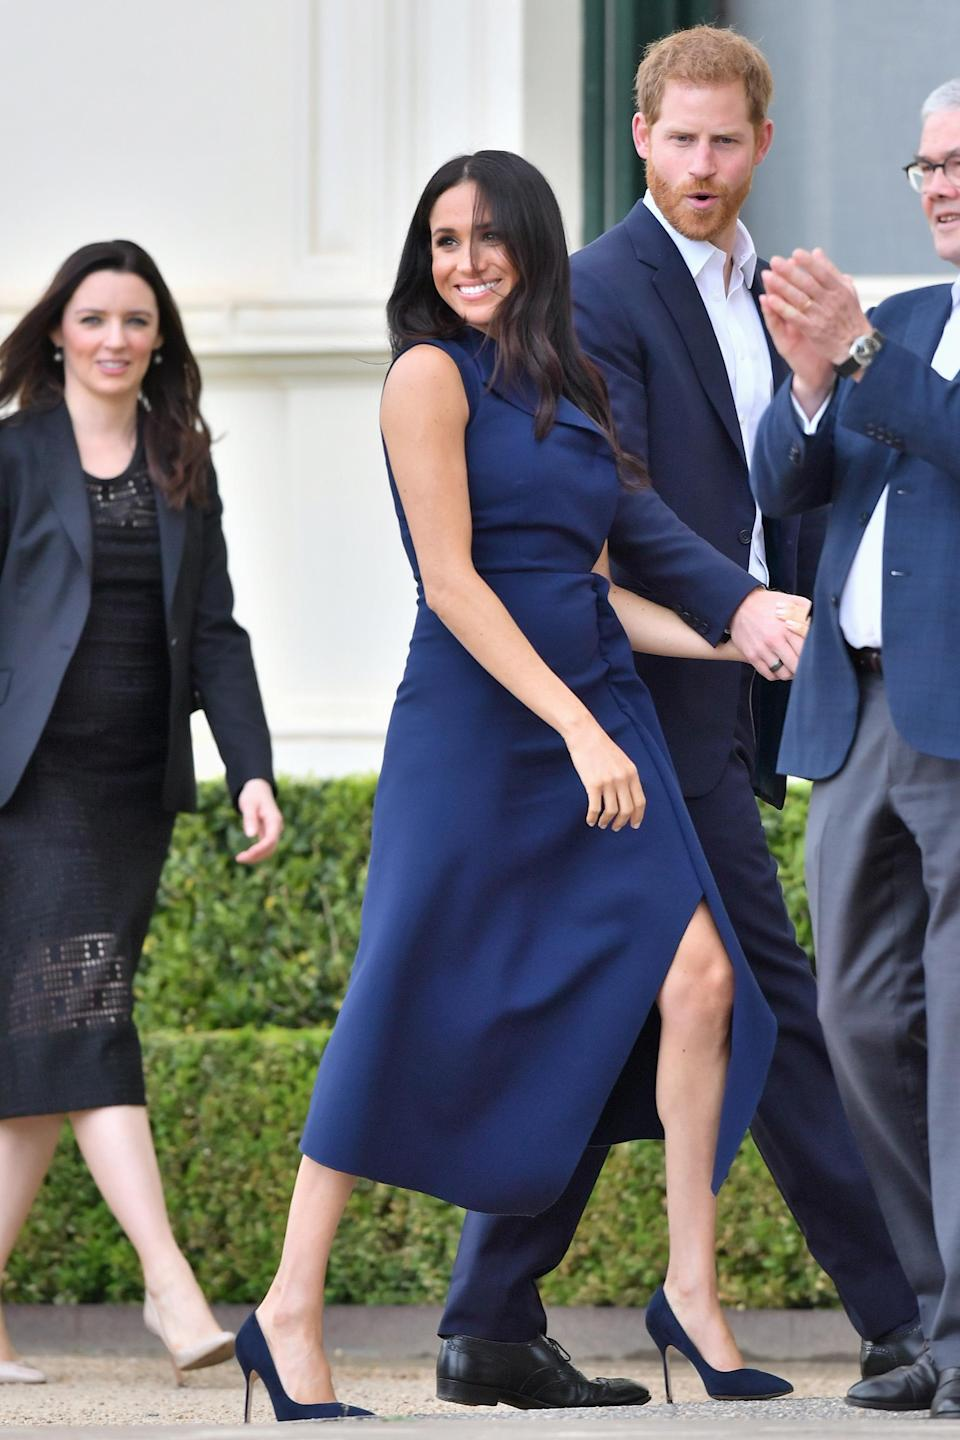 """<p>She paired the dress with navy <a rel=""""nofollow noopener"""" href=""""https://www.manoloblahnik.com/au/shopping/bb-12237005"""" target=""""_blank"""" data-ylk=""""slk:Manolo Blahnik BB heels"""" class=""""link rapid-noclick-resp"""">Manolo Blahnik BB heels</a> she's worn before, and the trench coat by Paris-based Aussie designer Martin Grant which she also pulled out on Tuesday. Photo: Getty </p>"""